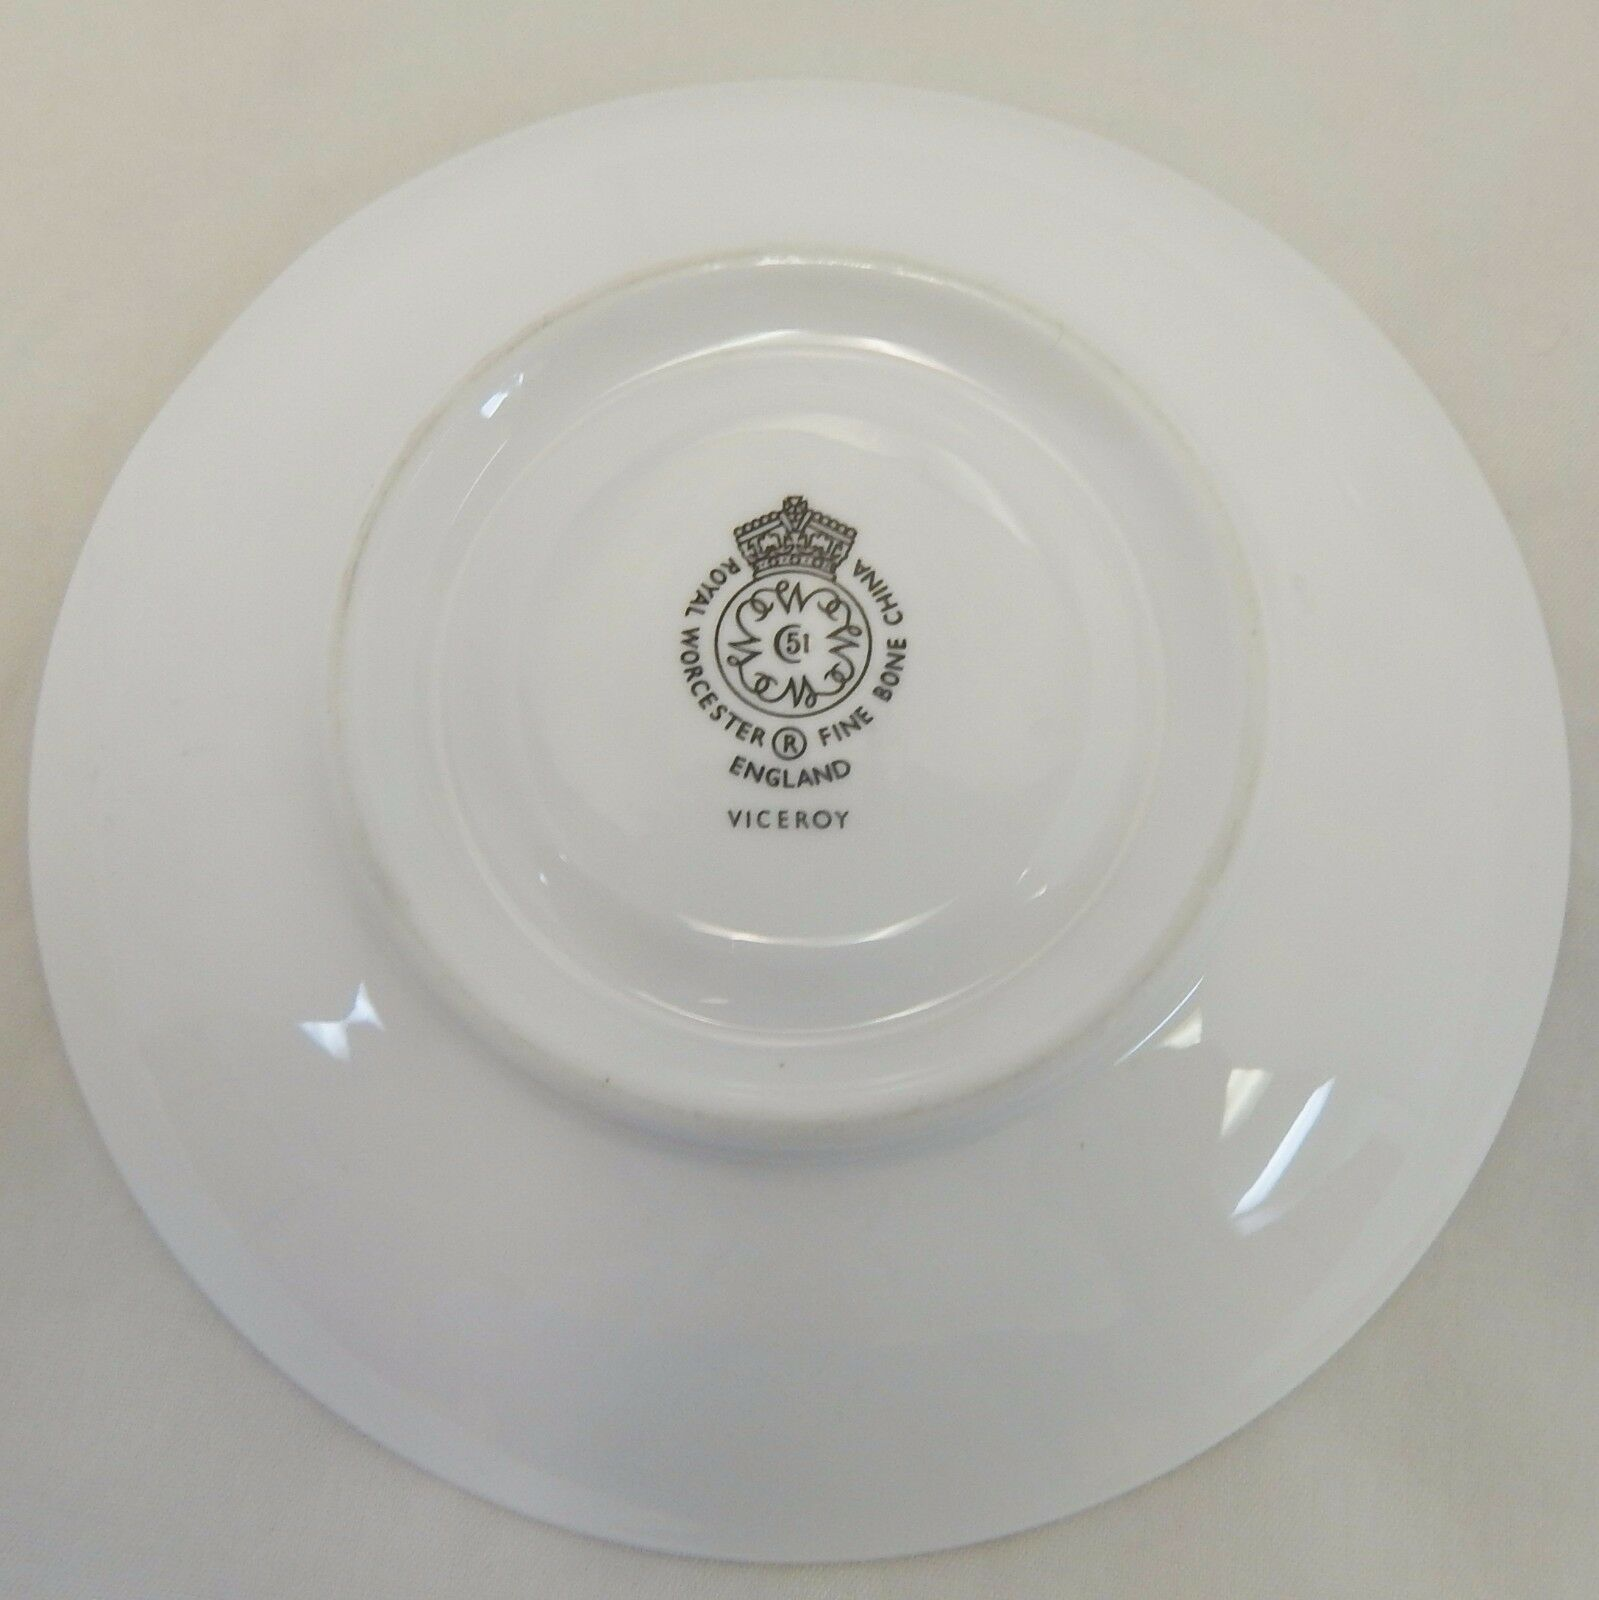 Royal Worcester England 2 Viceroy Cup and Saucer Sets